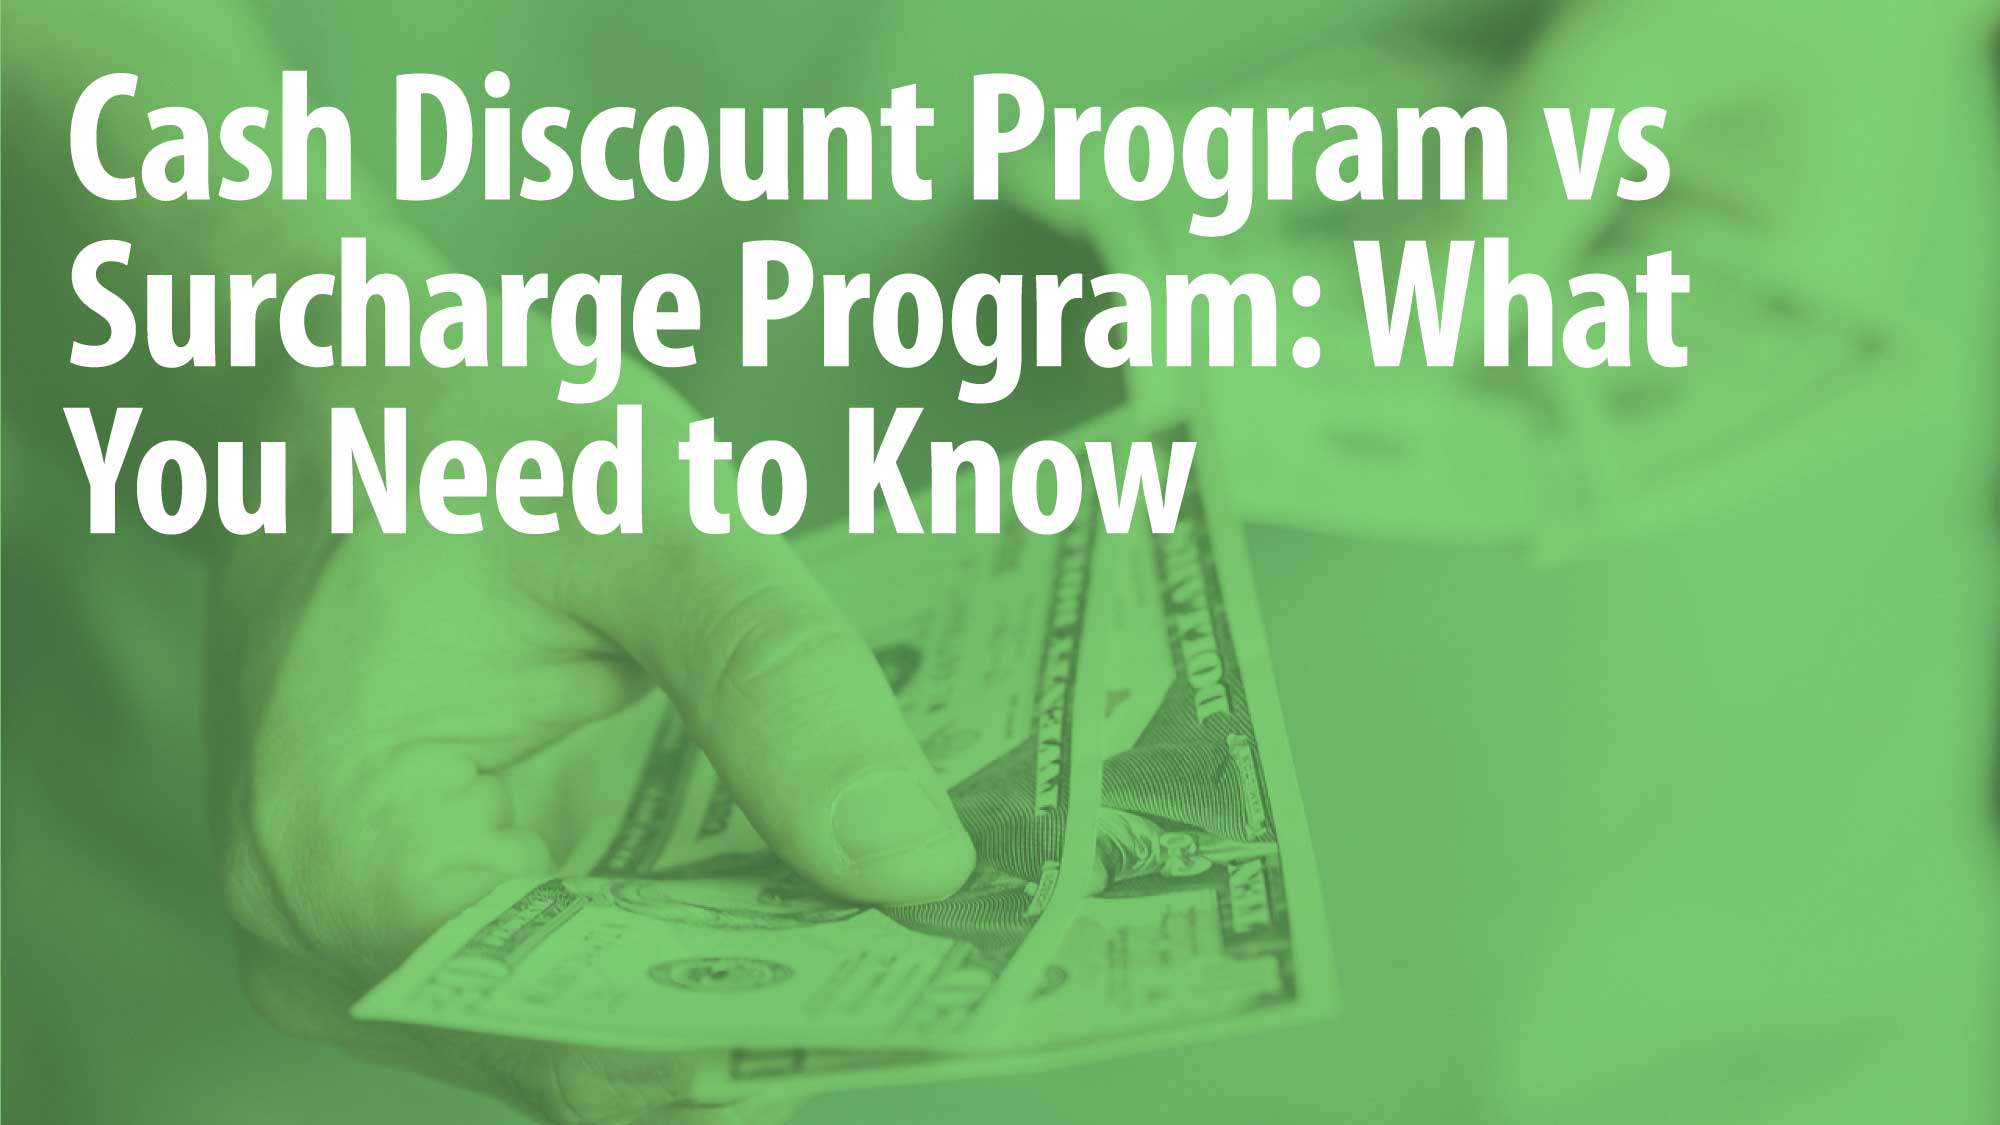 Cash Discount vs Surcharge Program: What You Need to Know